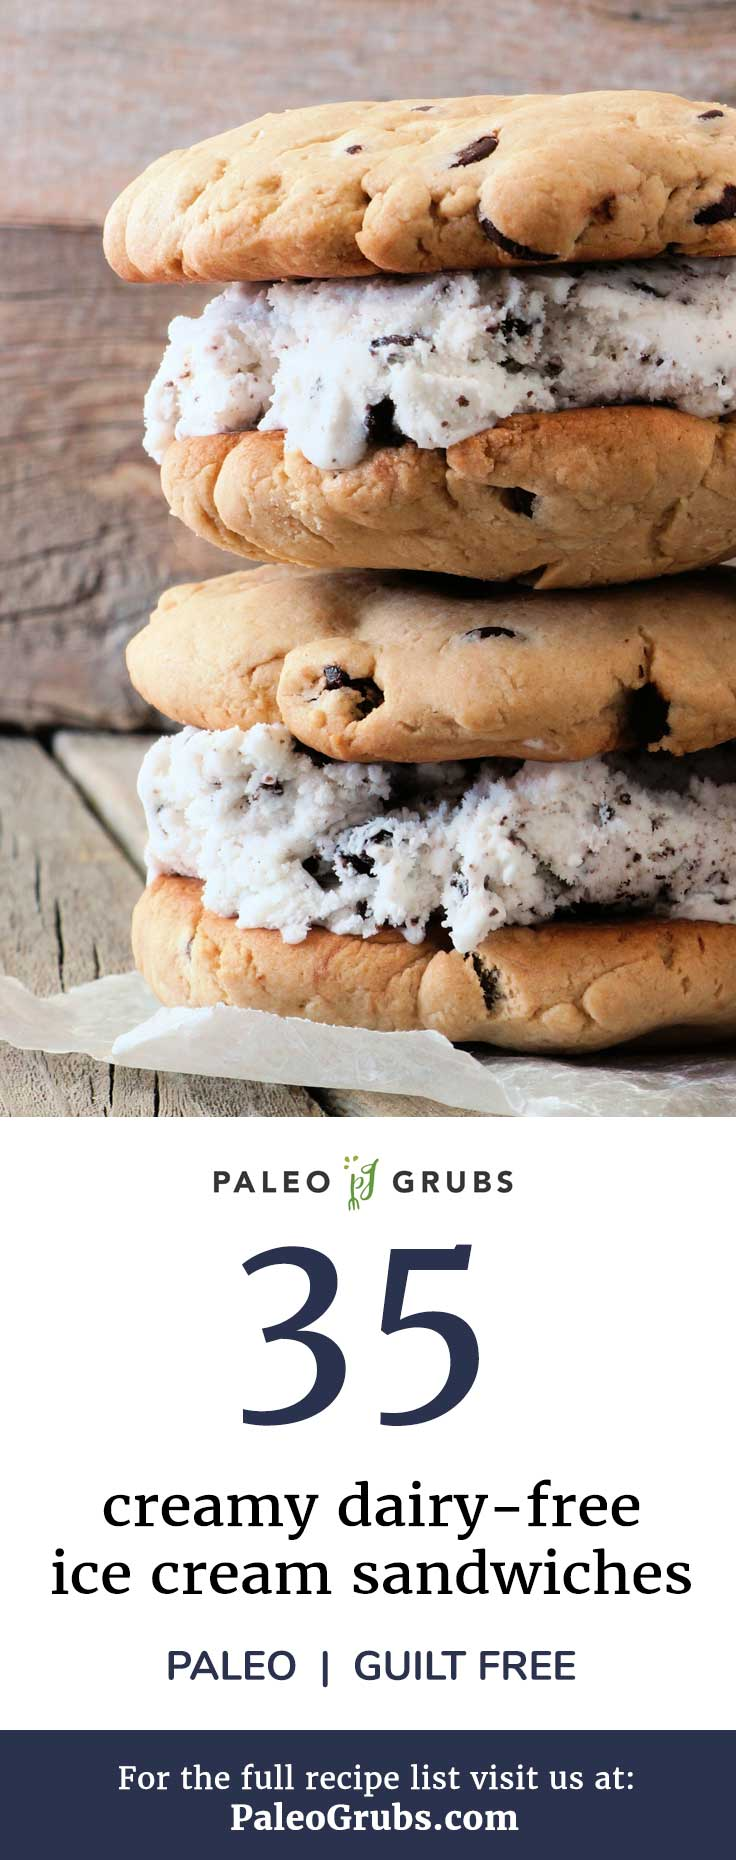 These dairy-free ice cream sandwiches are creamy, rich, and just plain yummy! Give one a try.